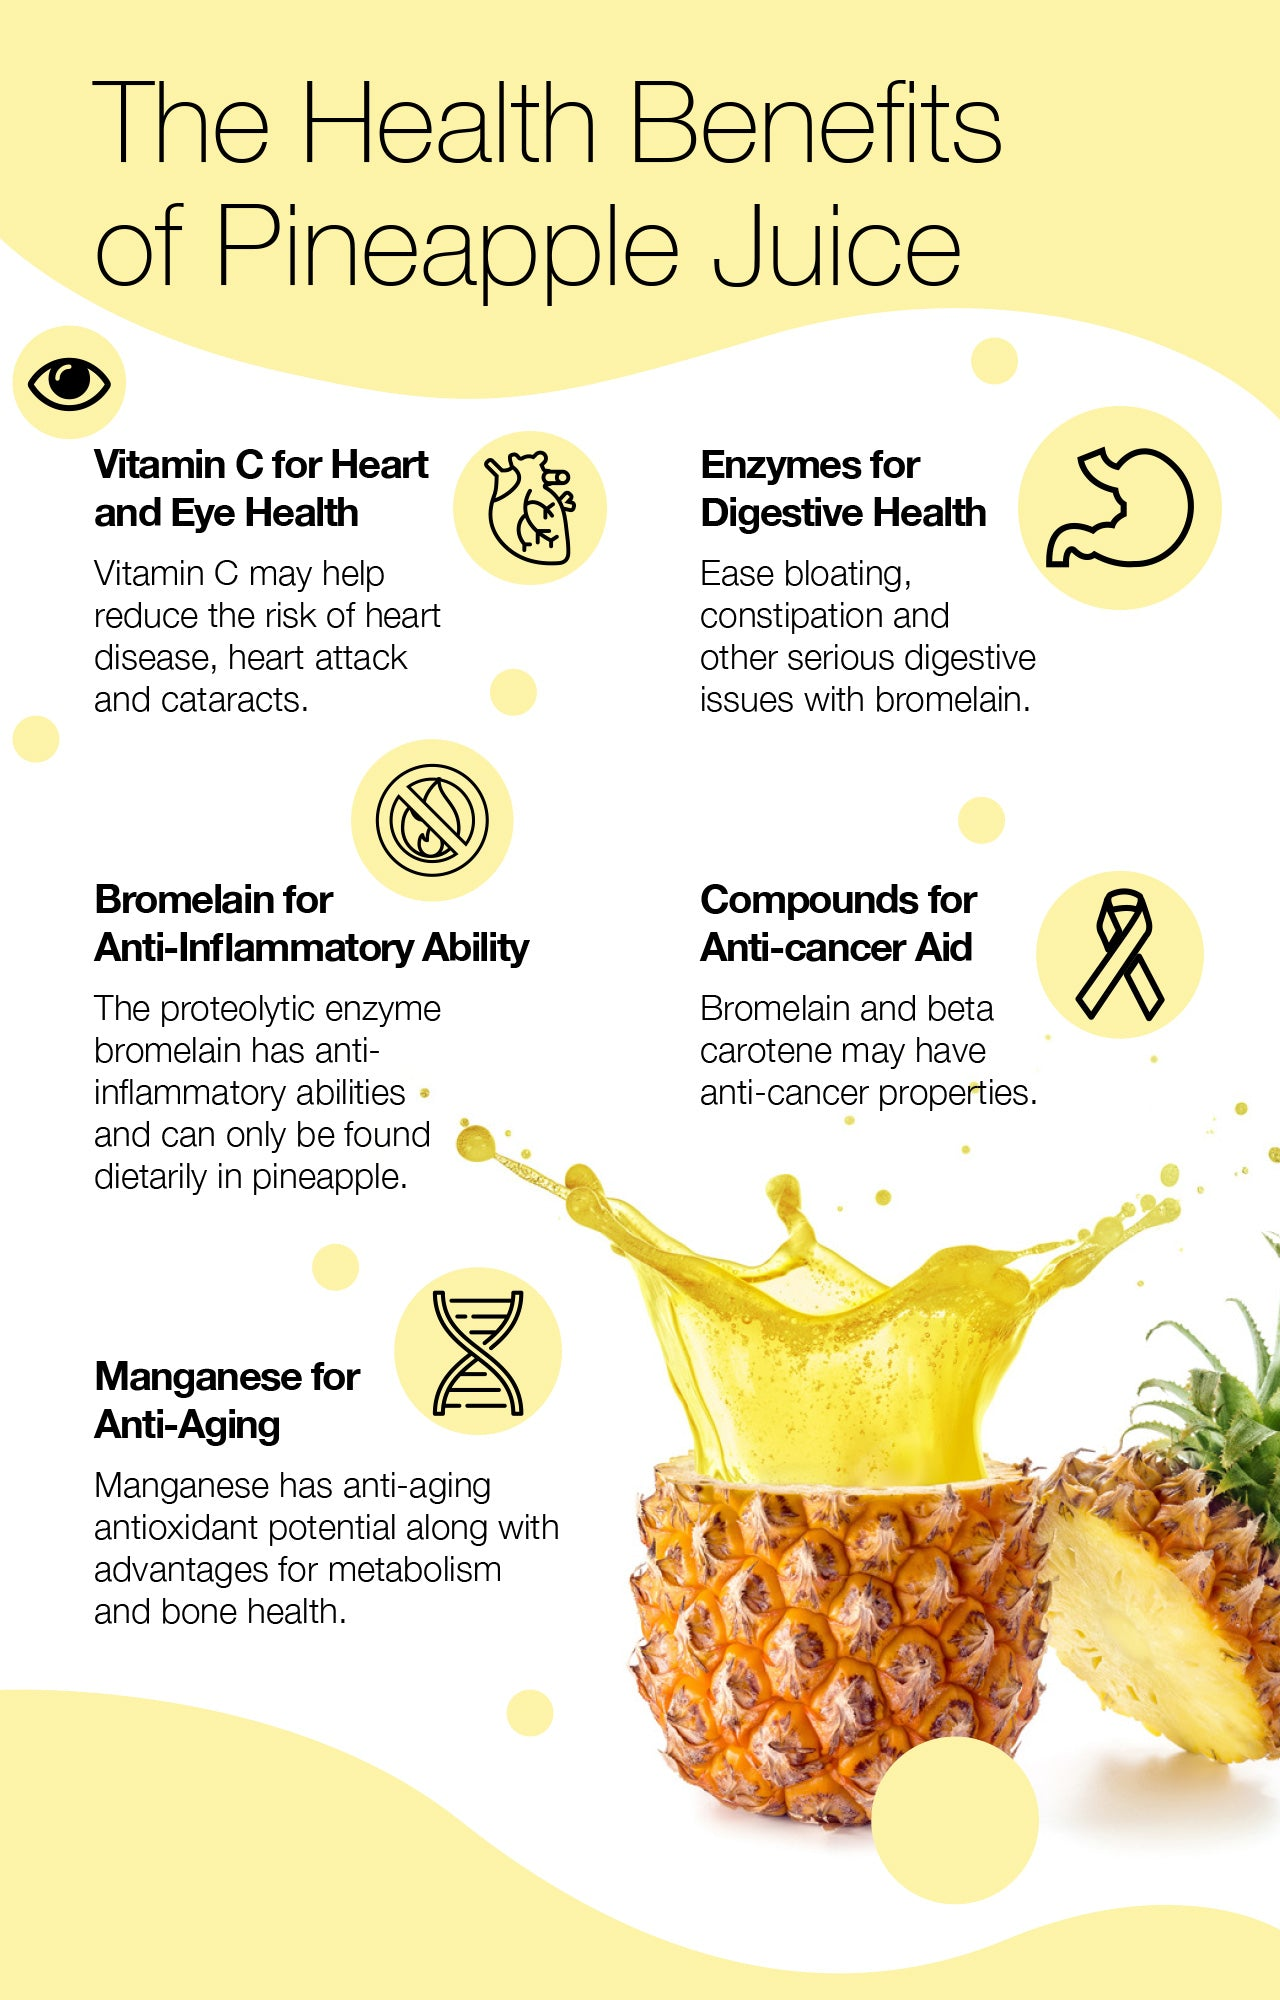 The Health Benefits of Pineapple Juice